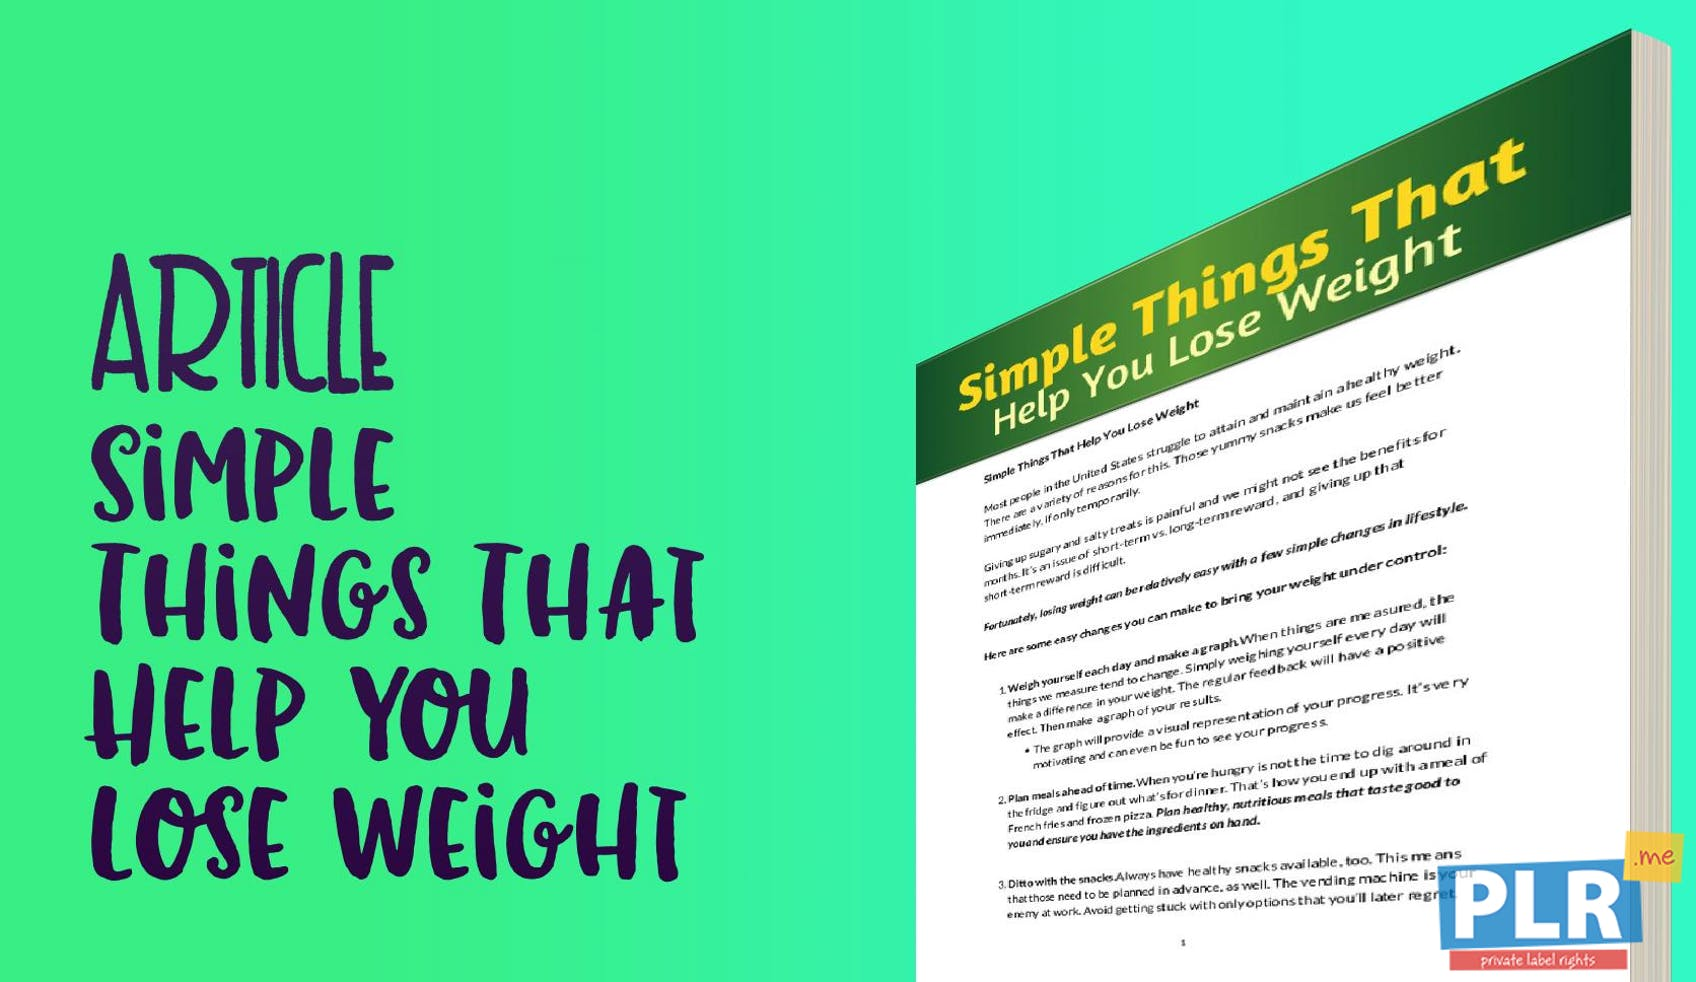 plr articles & blog posts - simple things that help you lose weight